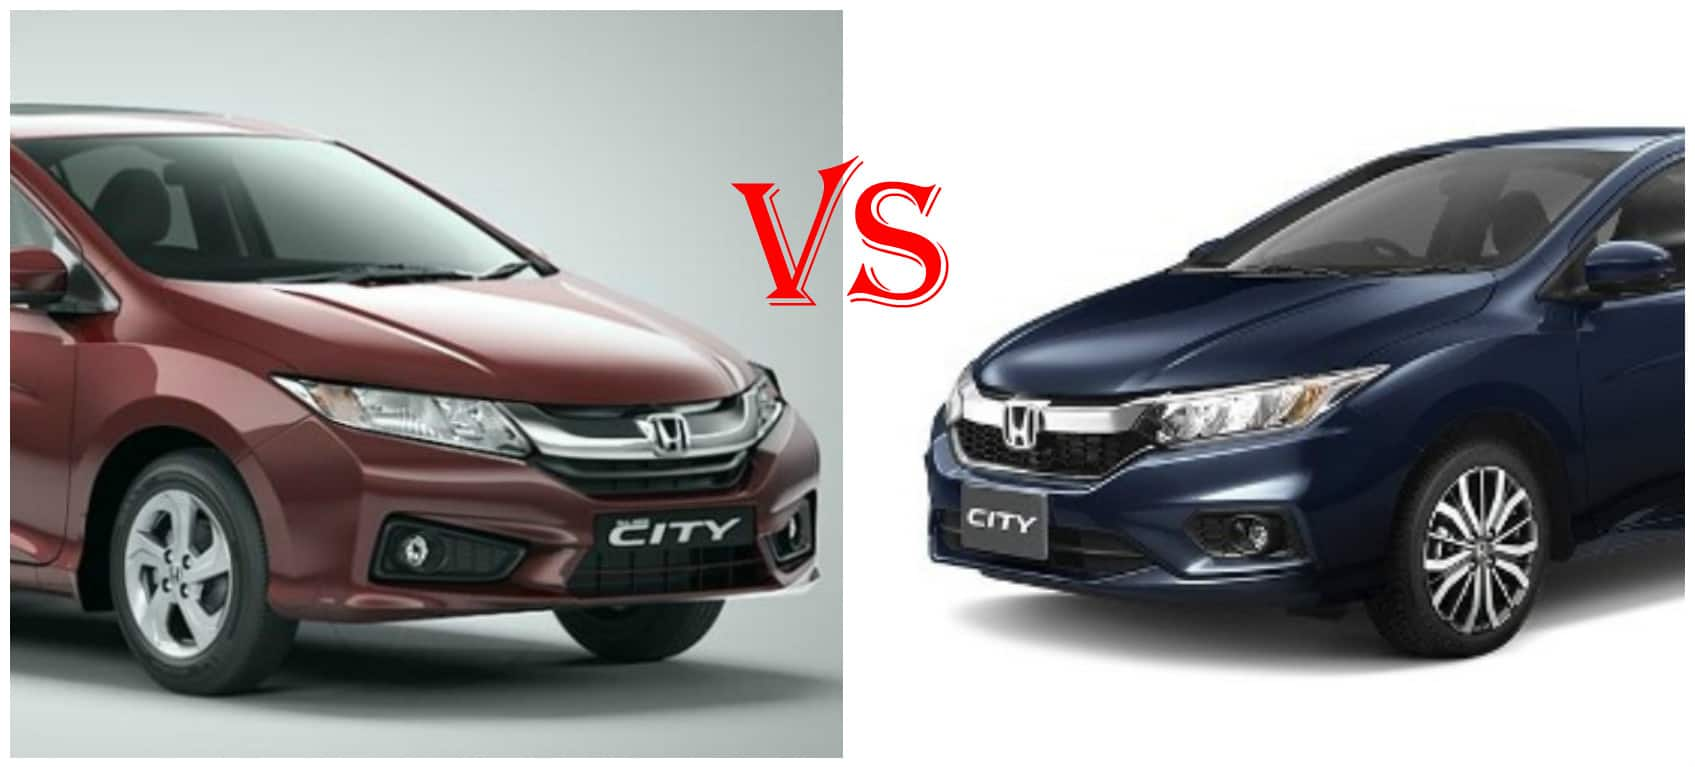 New Honda City 2017 Vs 2016 - Key differences